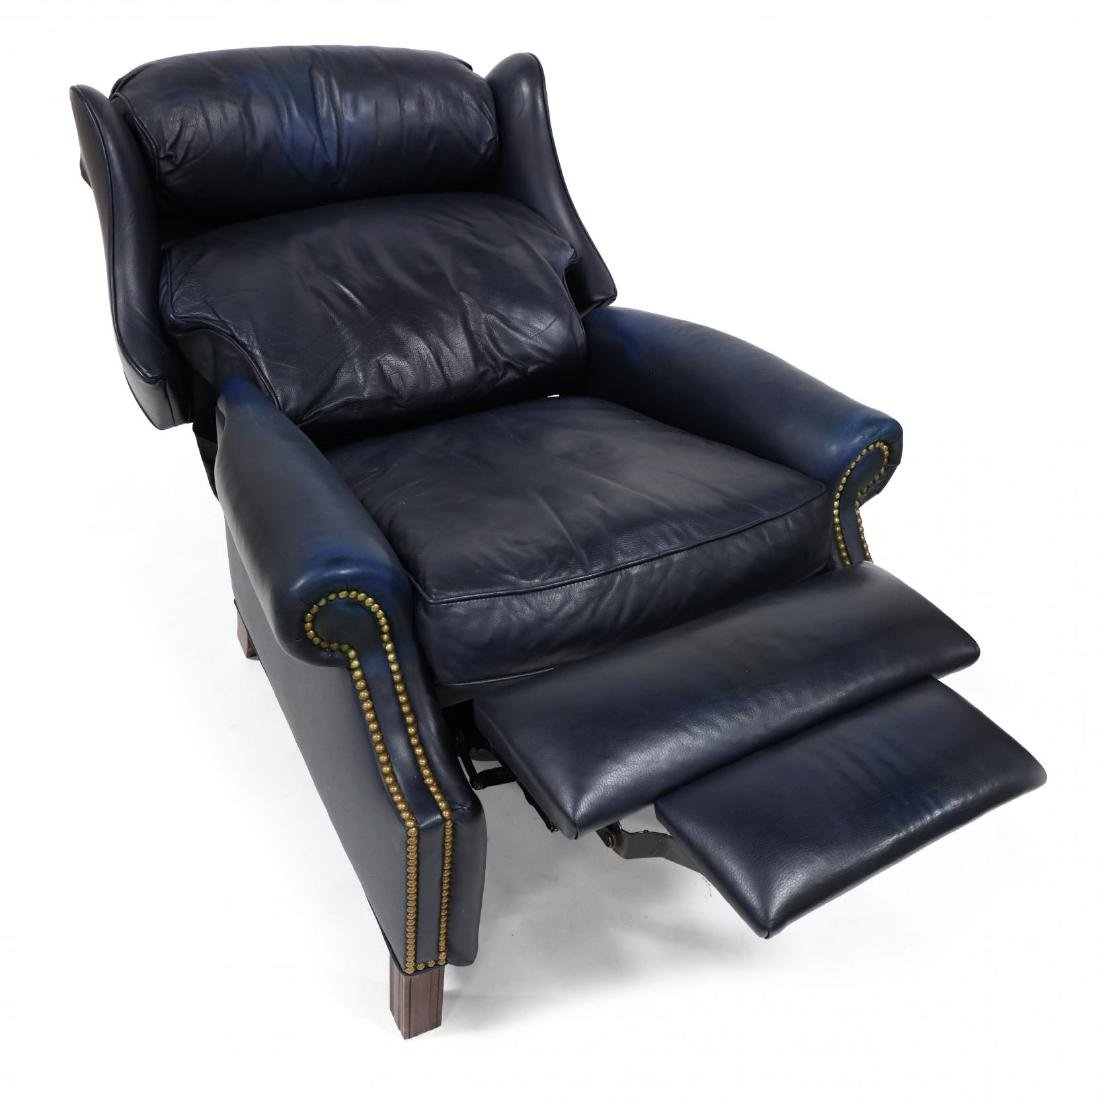 Hancock & Moore, Leather Upholstered Recliner - 3